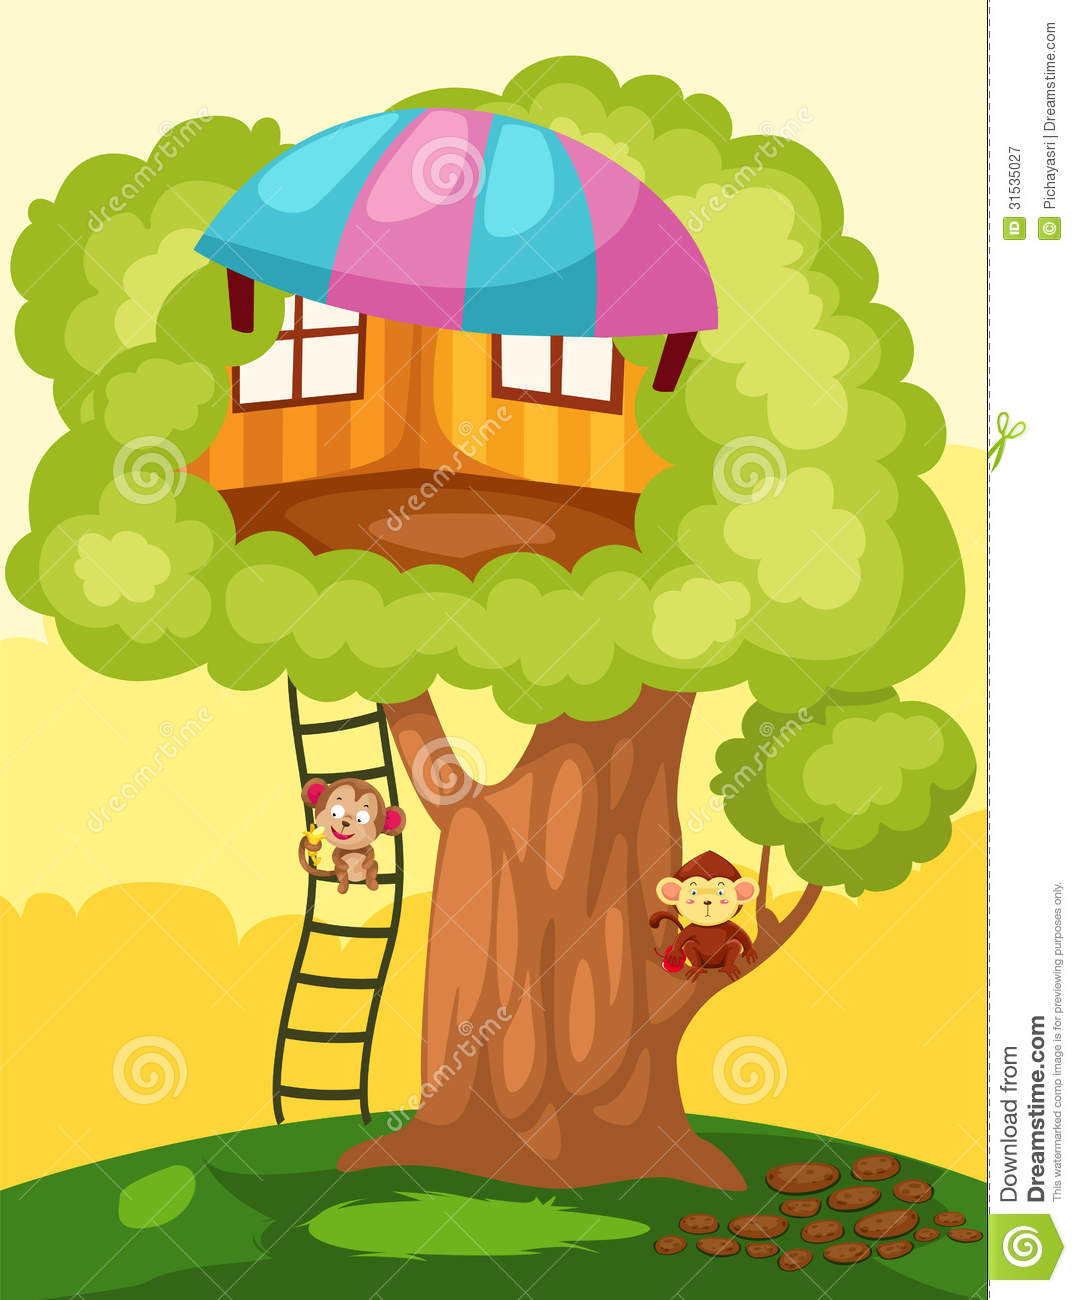 clipart pictures tree house - photo #31